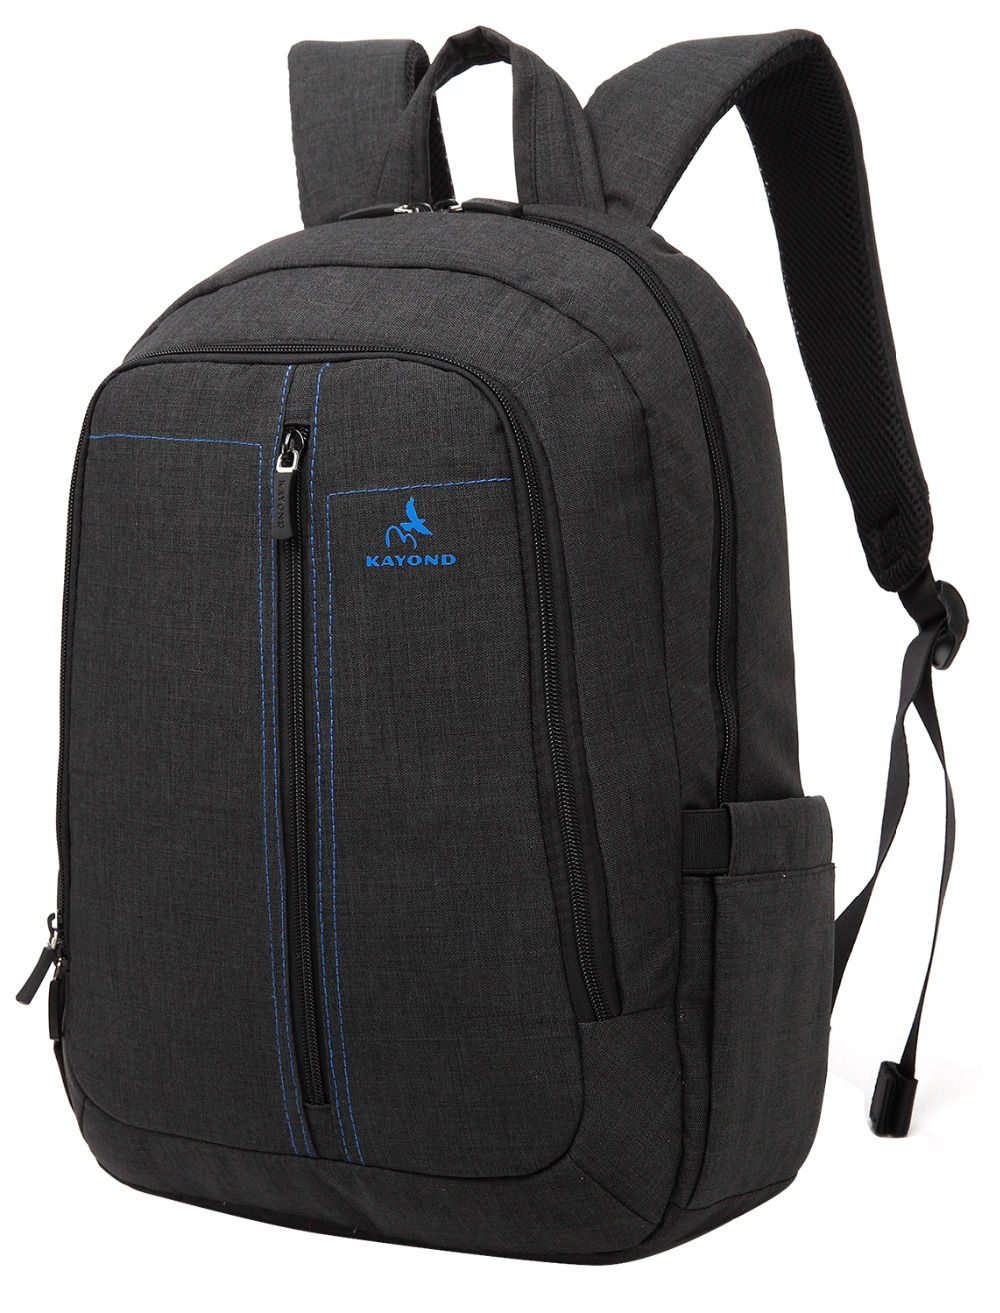 Laptop Bags For Travel - Super light fashion laptop backpack in 15 4 15 6 inch for sony hp notebook travel